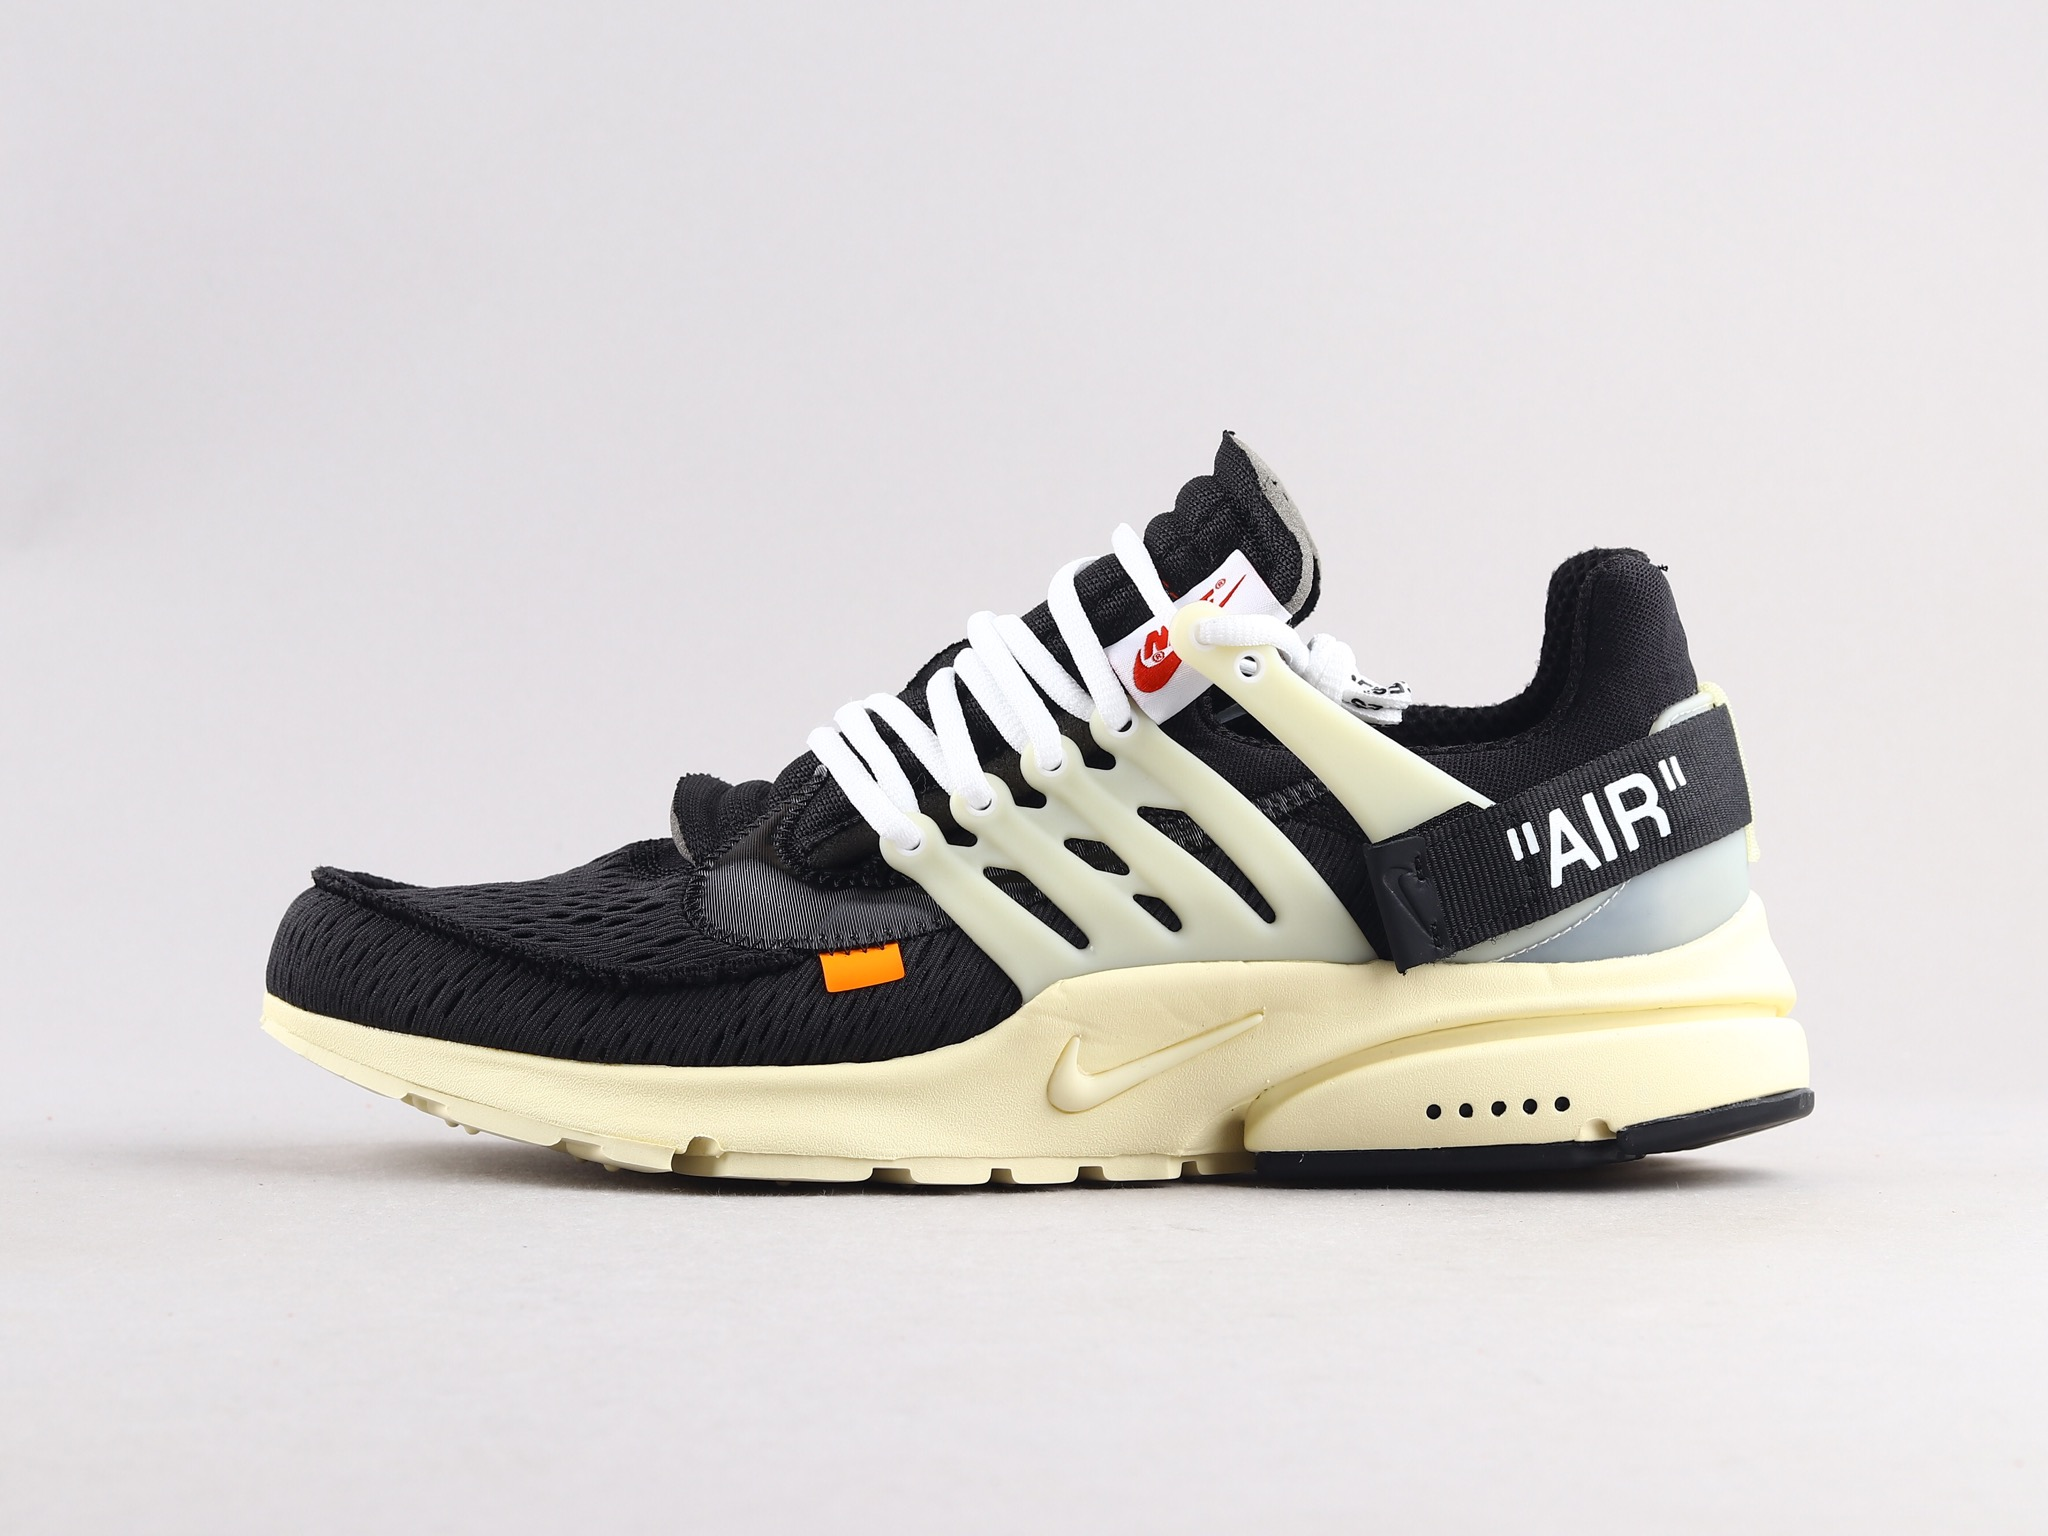 NIKE x OFF-WHITE AIR PRESTO THE TEN 解构 袜子跑鞋 AA3830-001